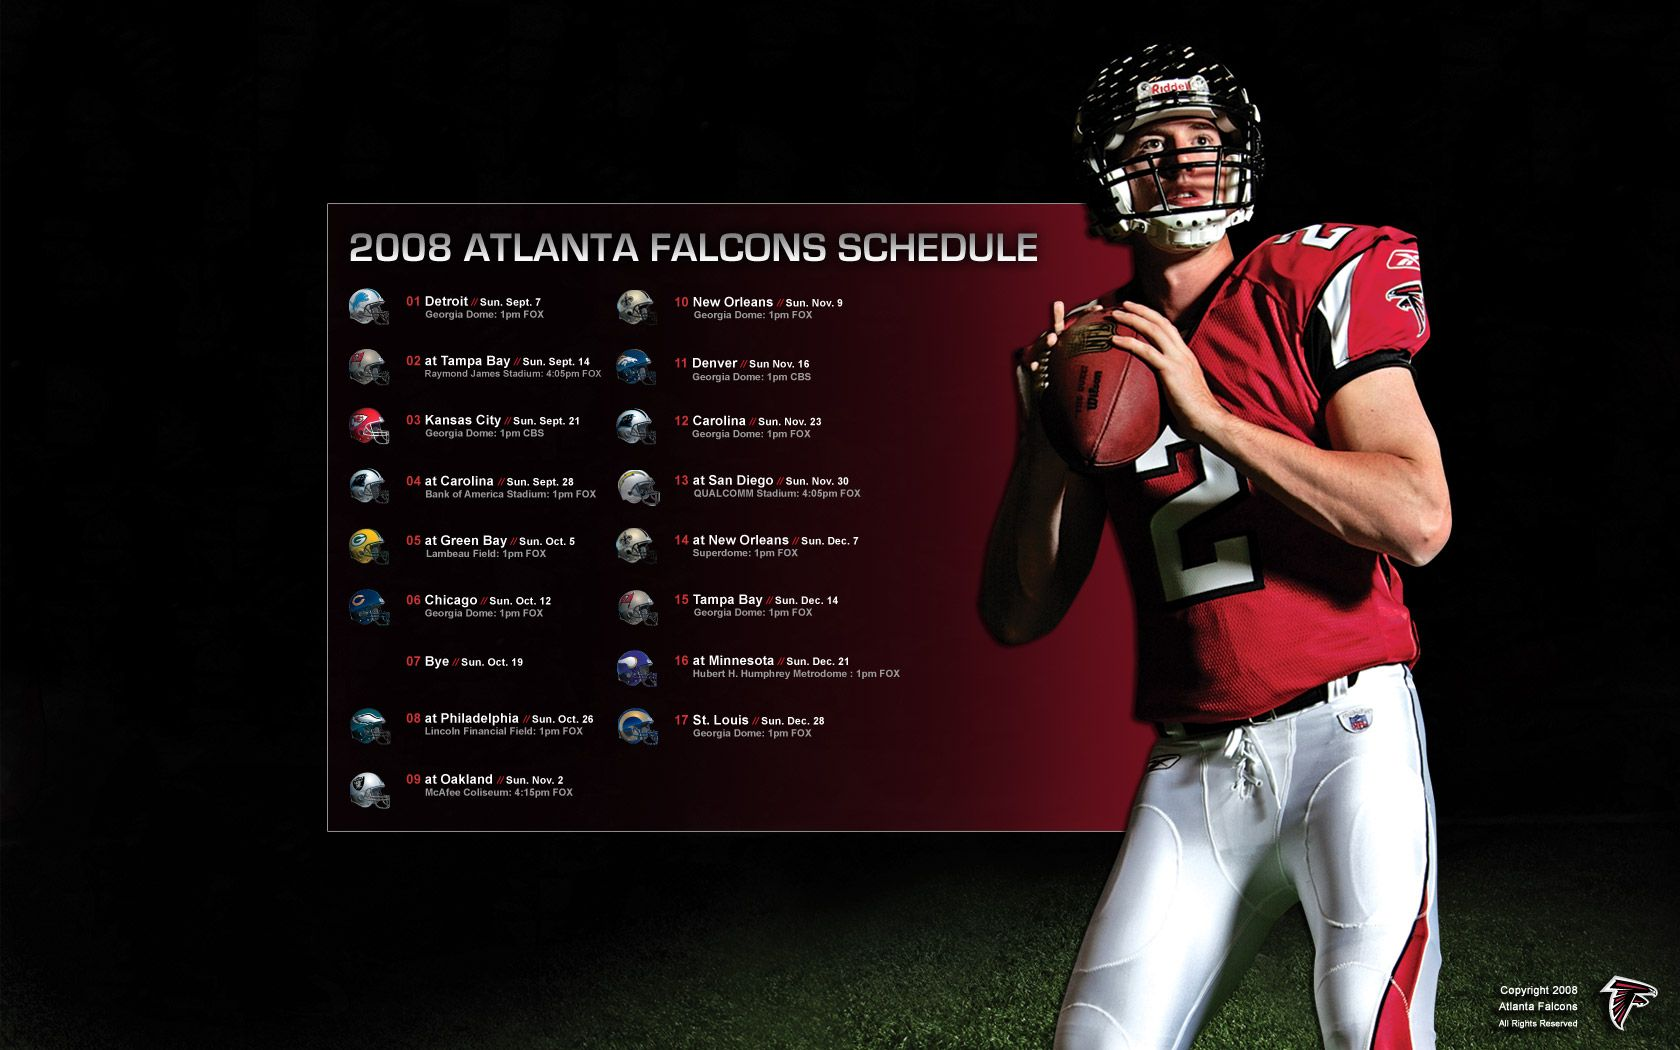 Matt Ryan Matt Ryan Wallpaper College Football Schedule Atlanta Falcons Schedule Matt Ryan